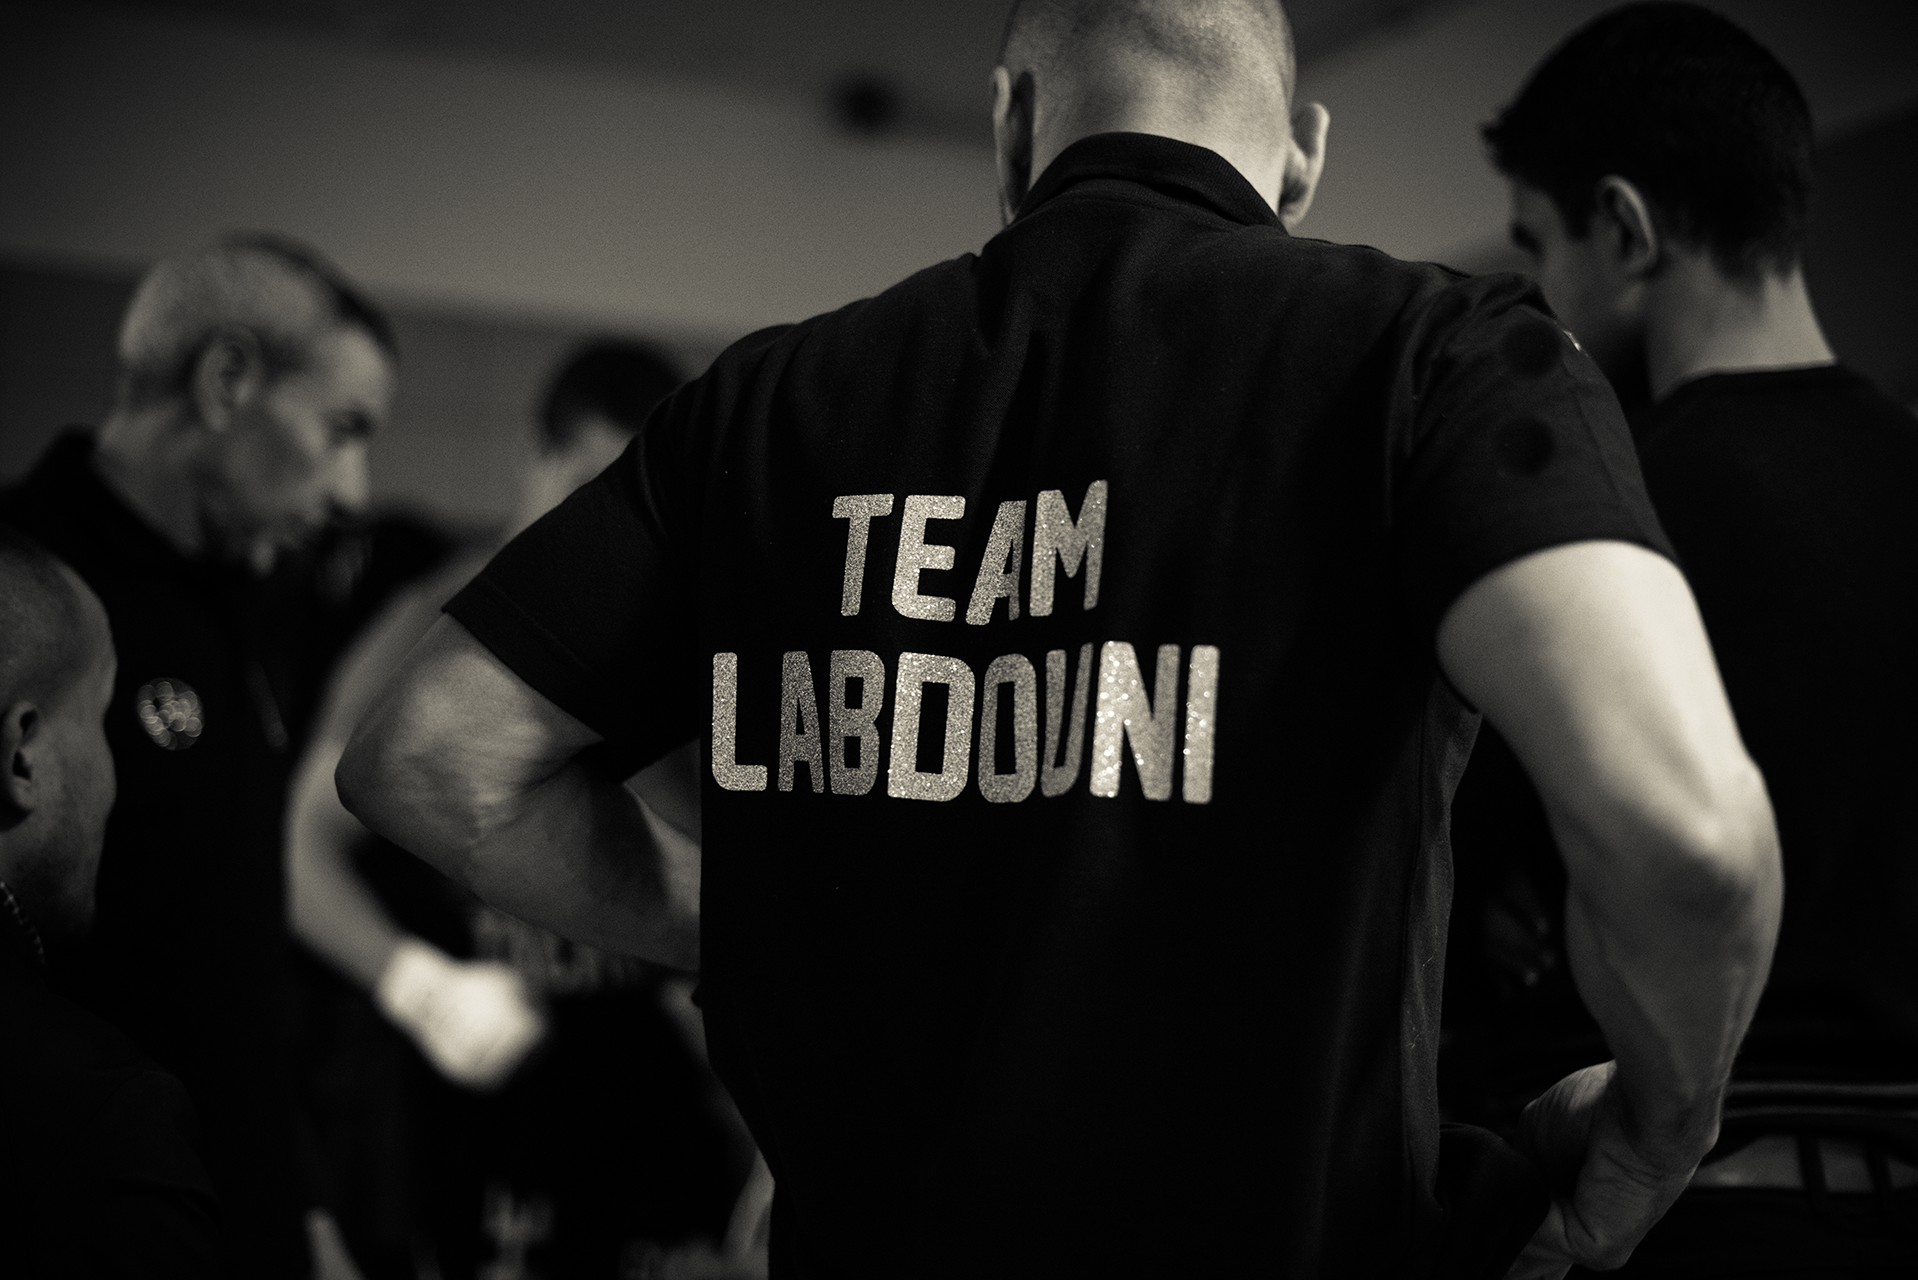 photographe-ile-de-france-boxe-reportage-photo